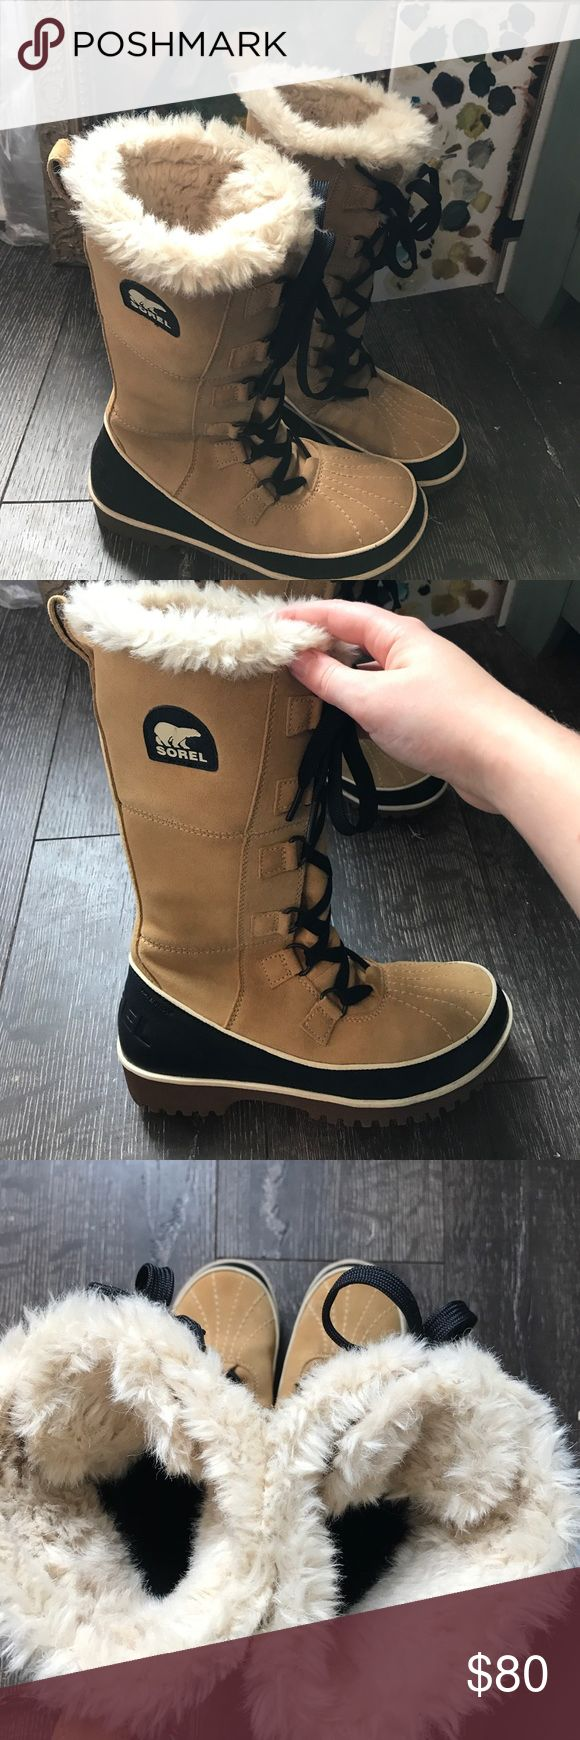 Sorel Snow Boots NWOT, really comfy, just too small for me, make an offer Sorel Shoes Winter & Rain Boots